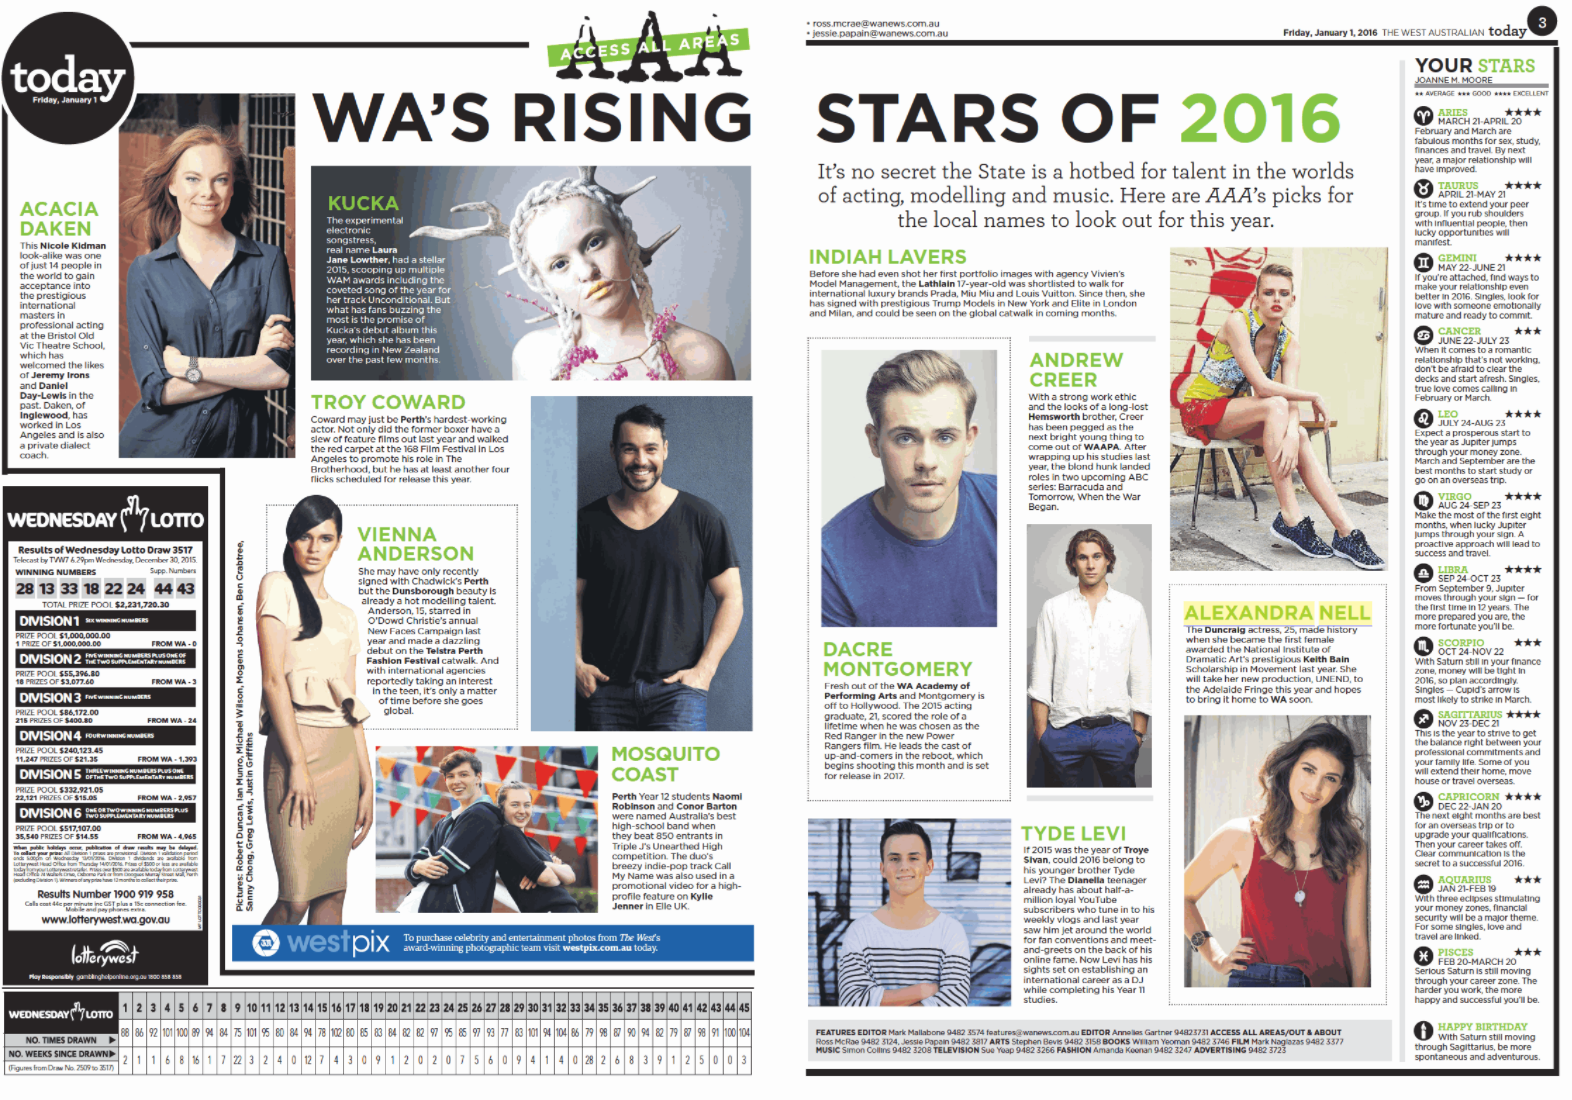 WA's Rising Stars of 2016 Today The Weekend West (2016)